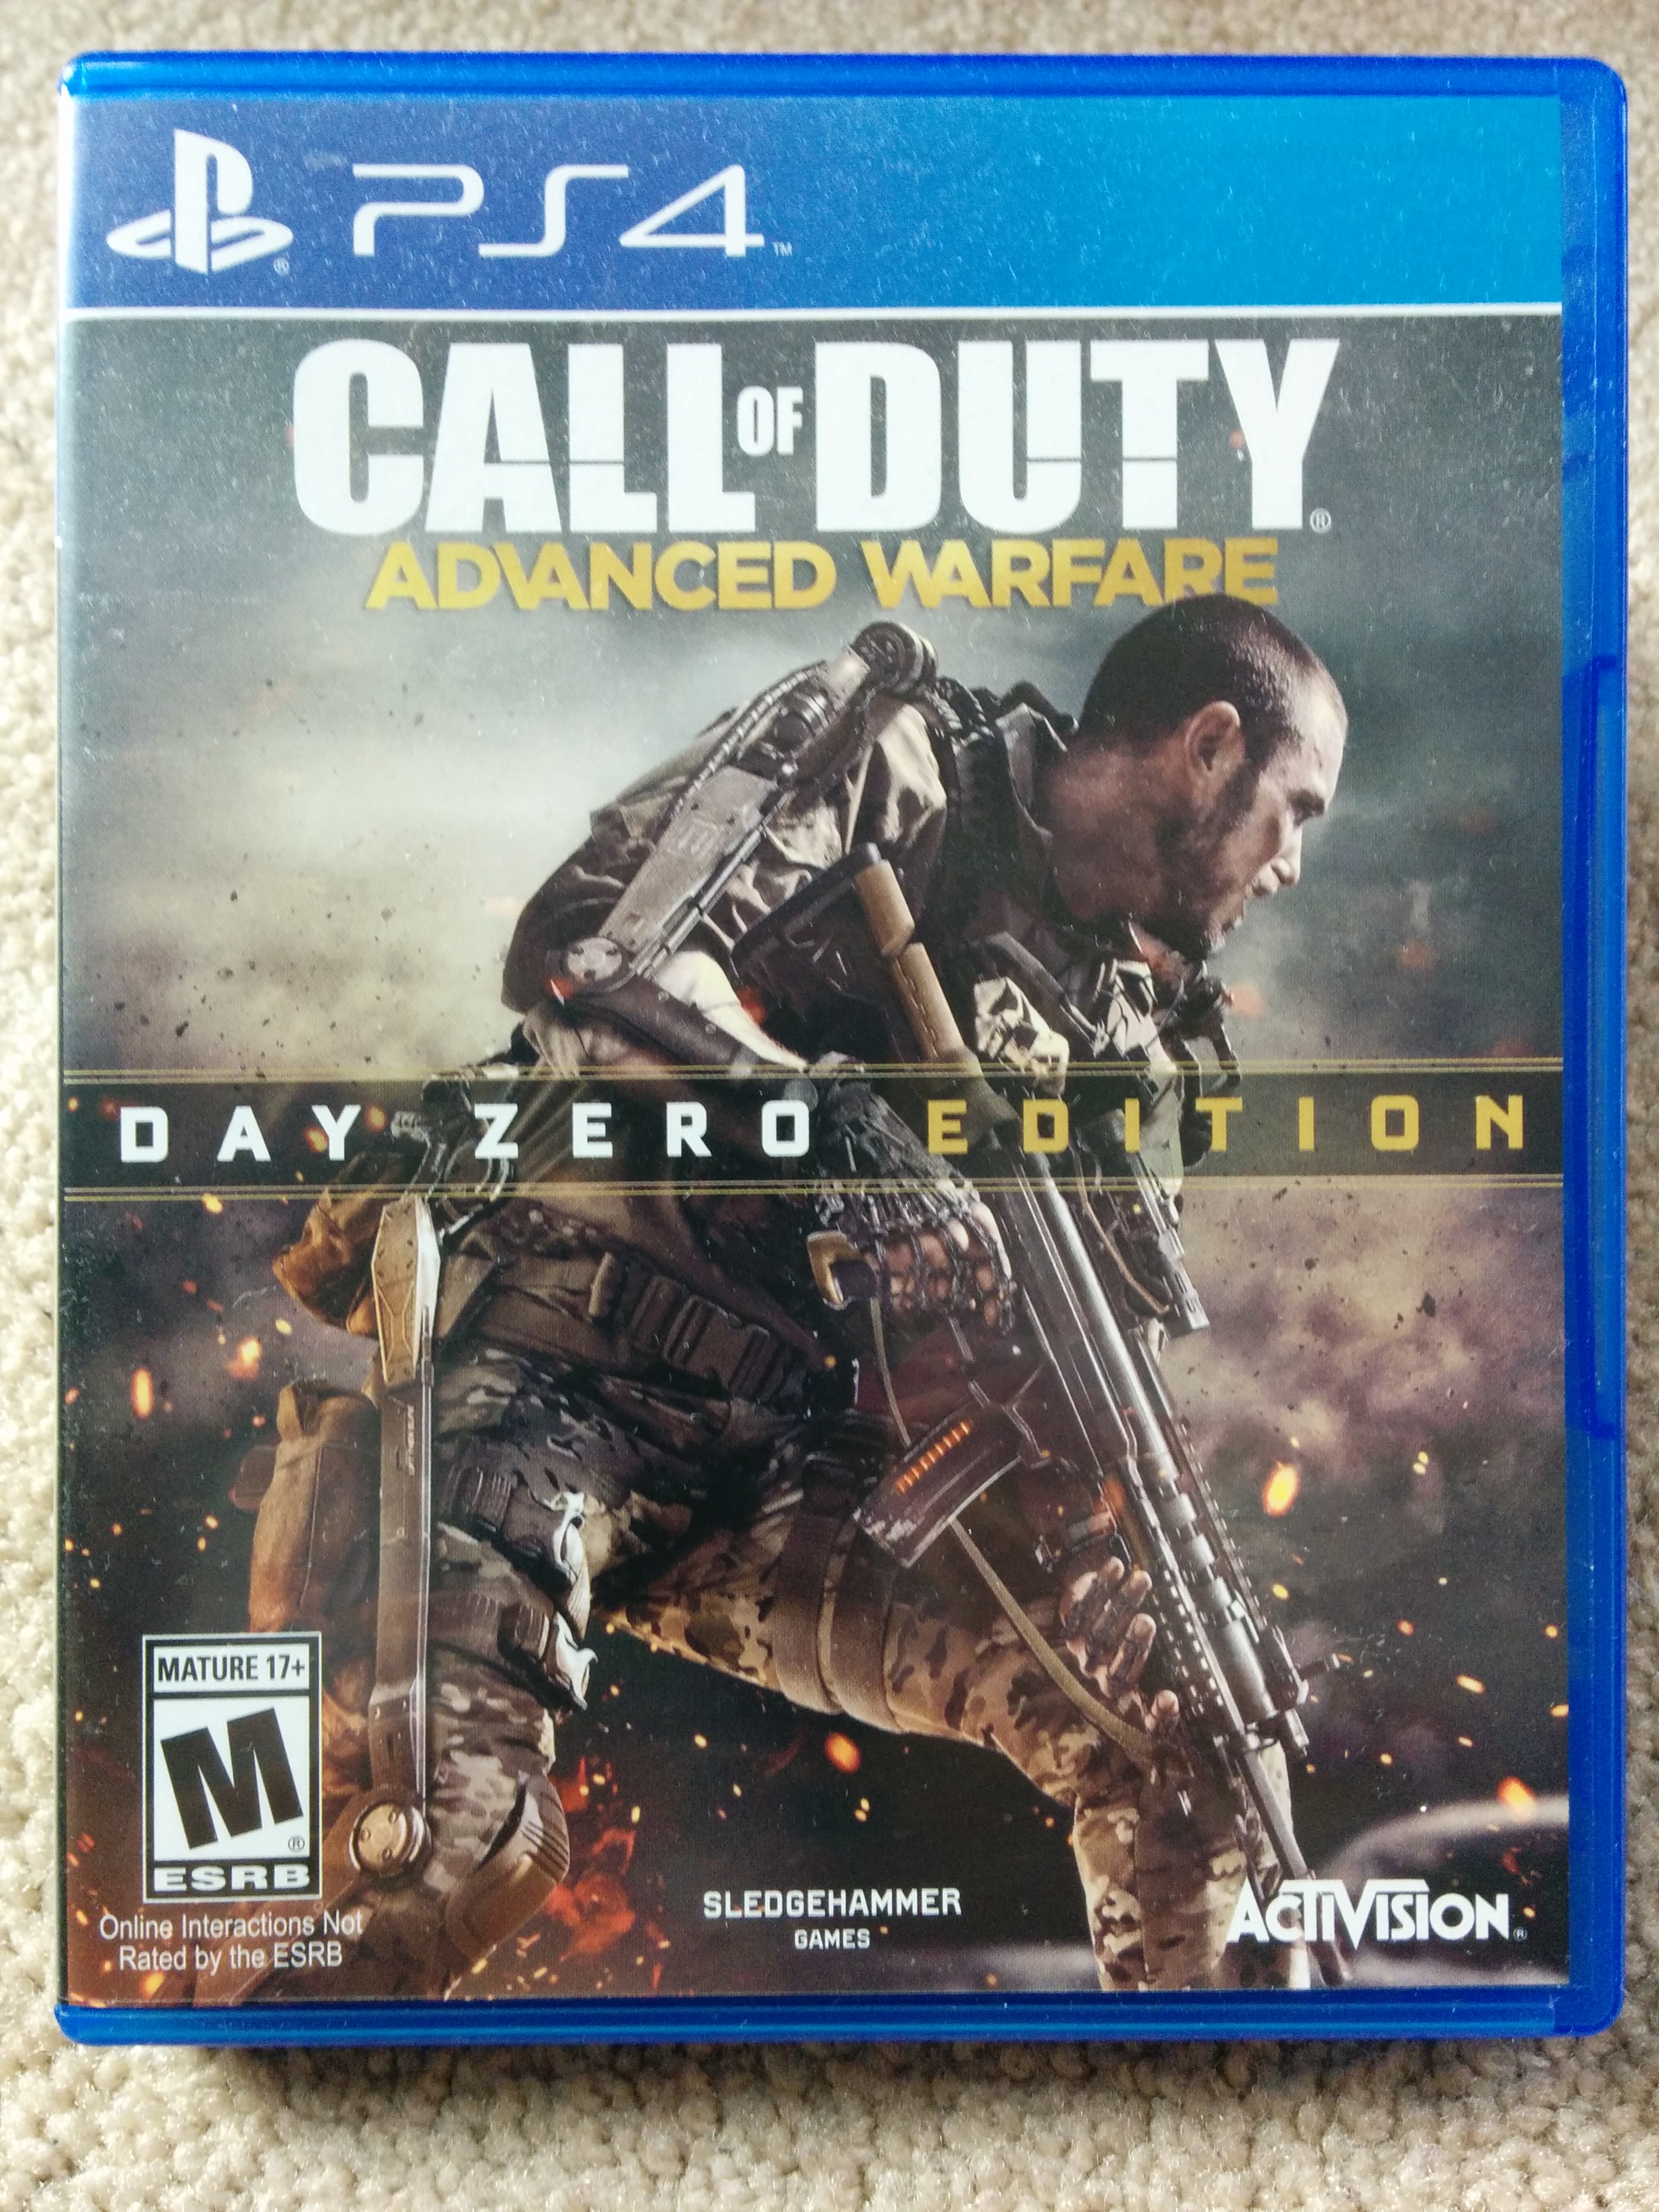 Call of duty / - Posts | Facebook